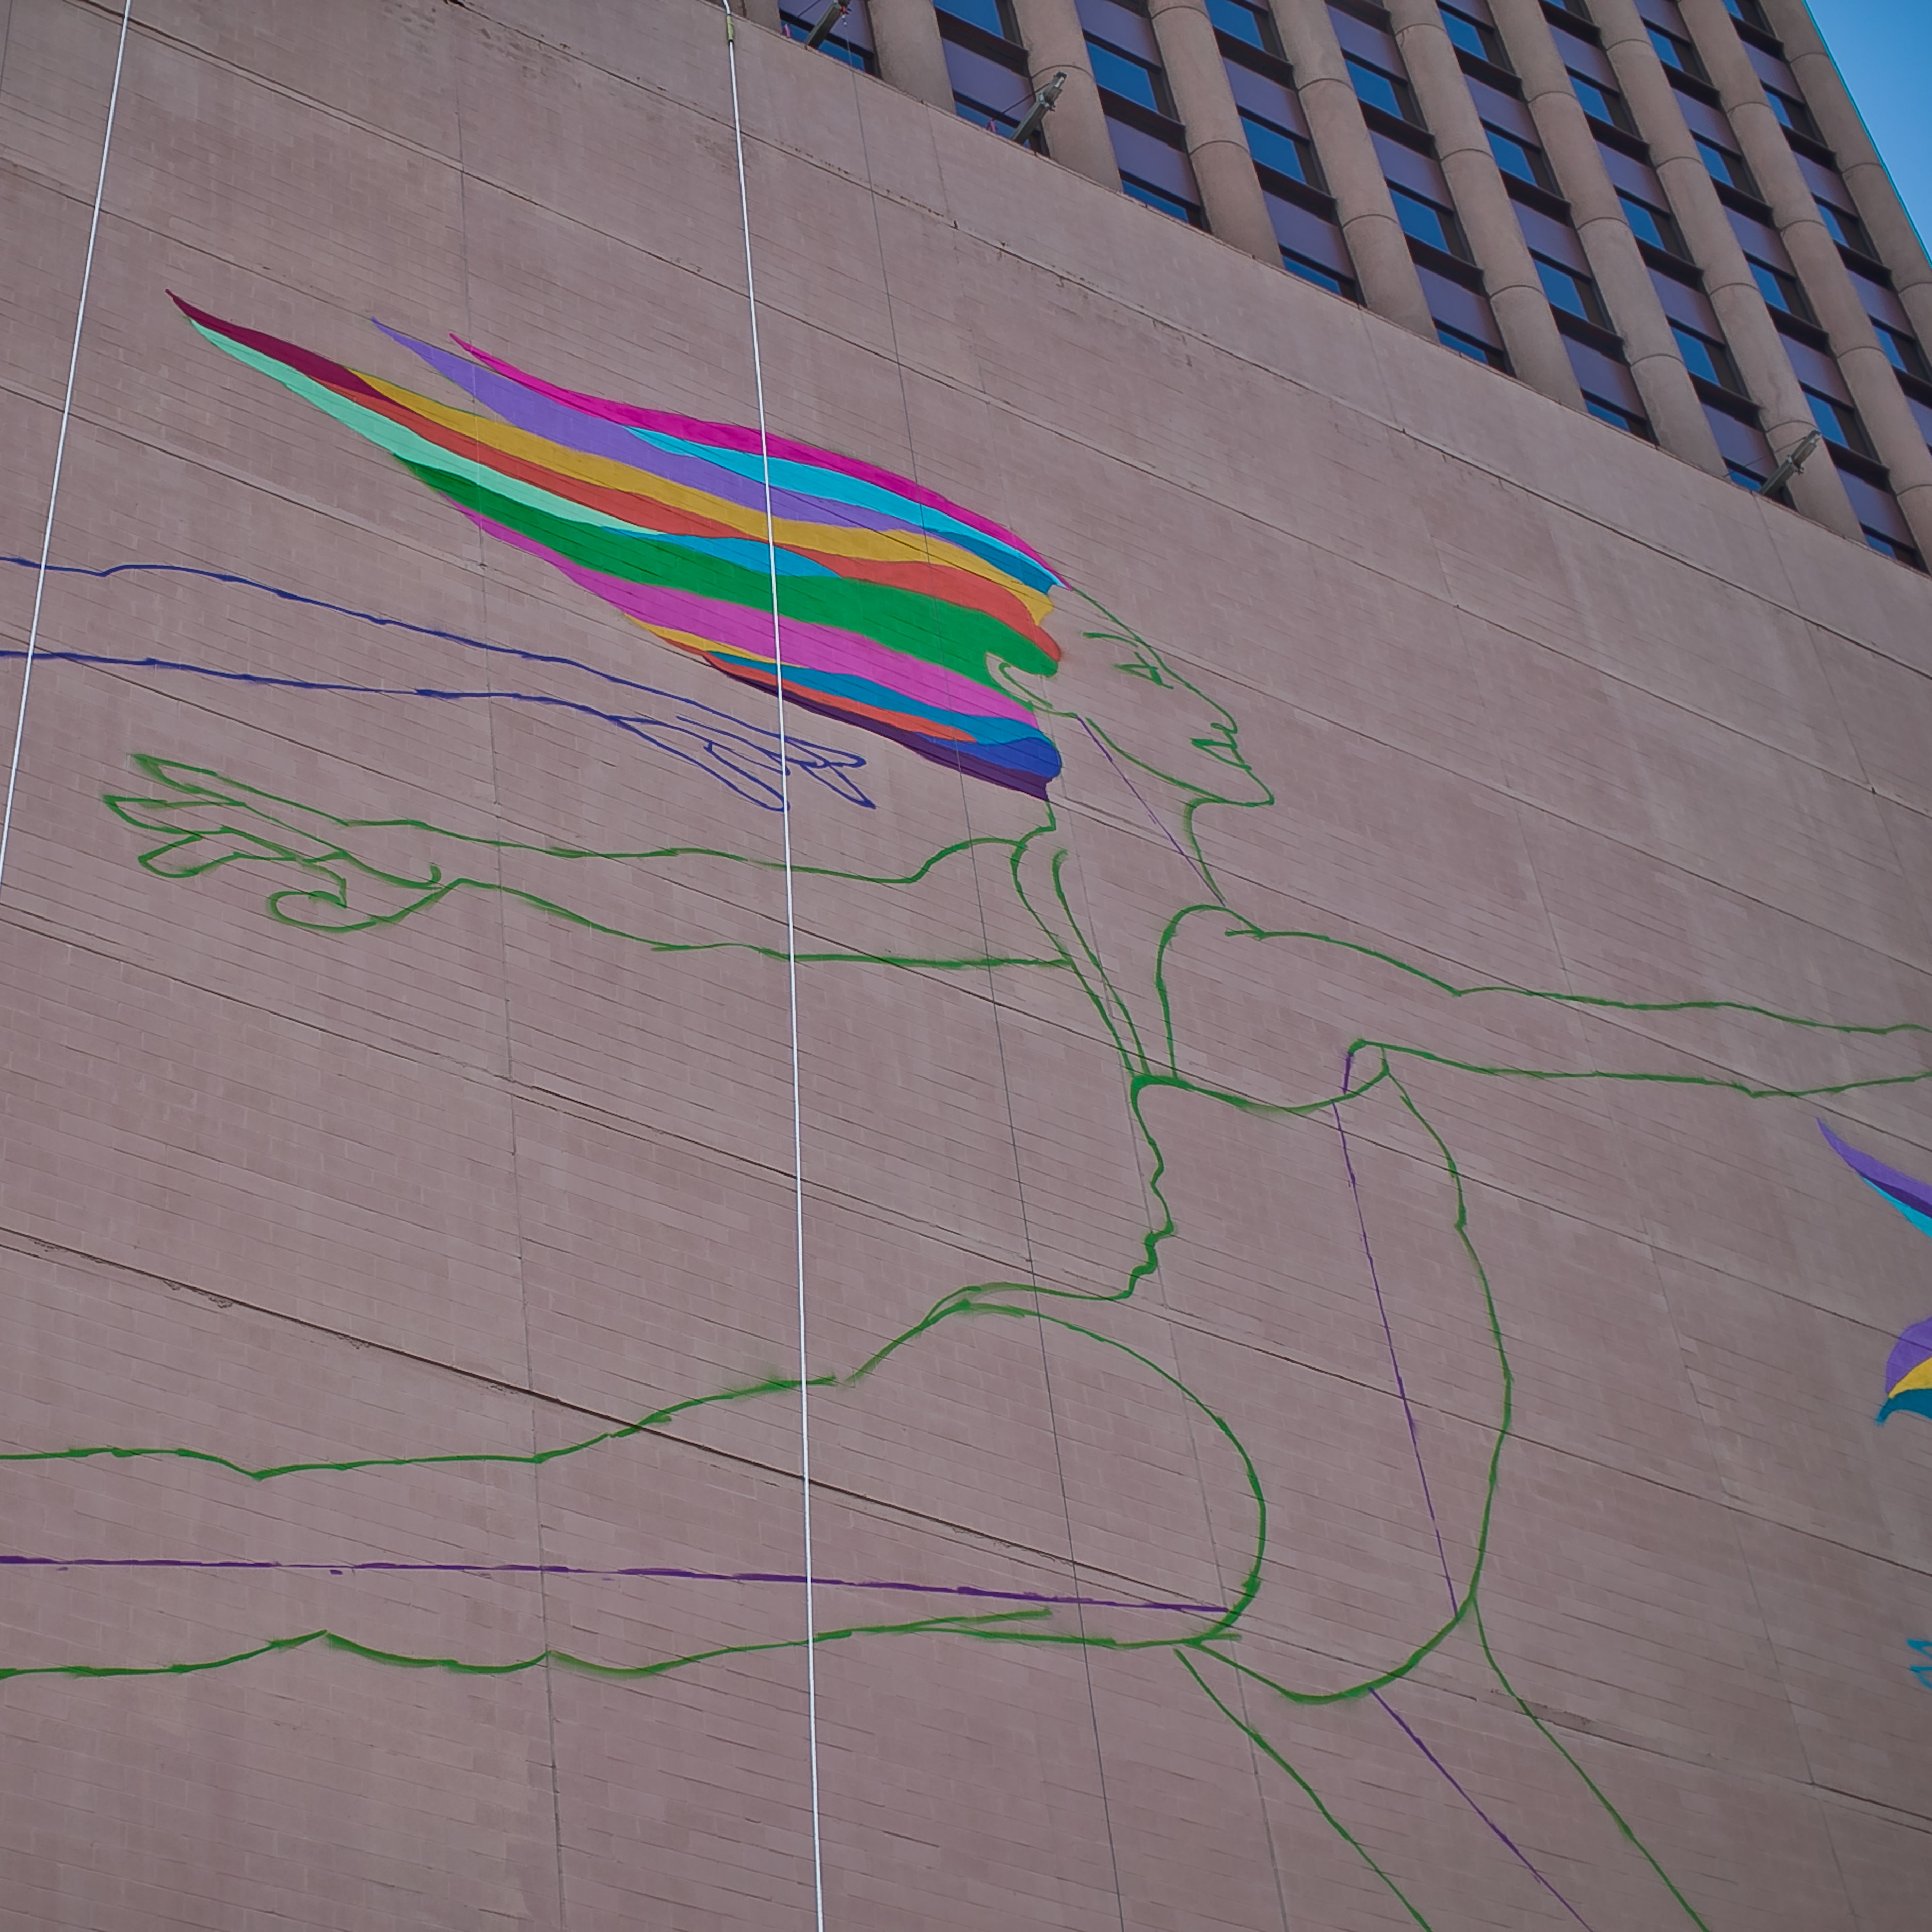 Sky dance mural in progress 01 photo by morris malakoff  the ckp group htfbhd